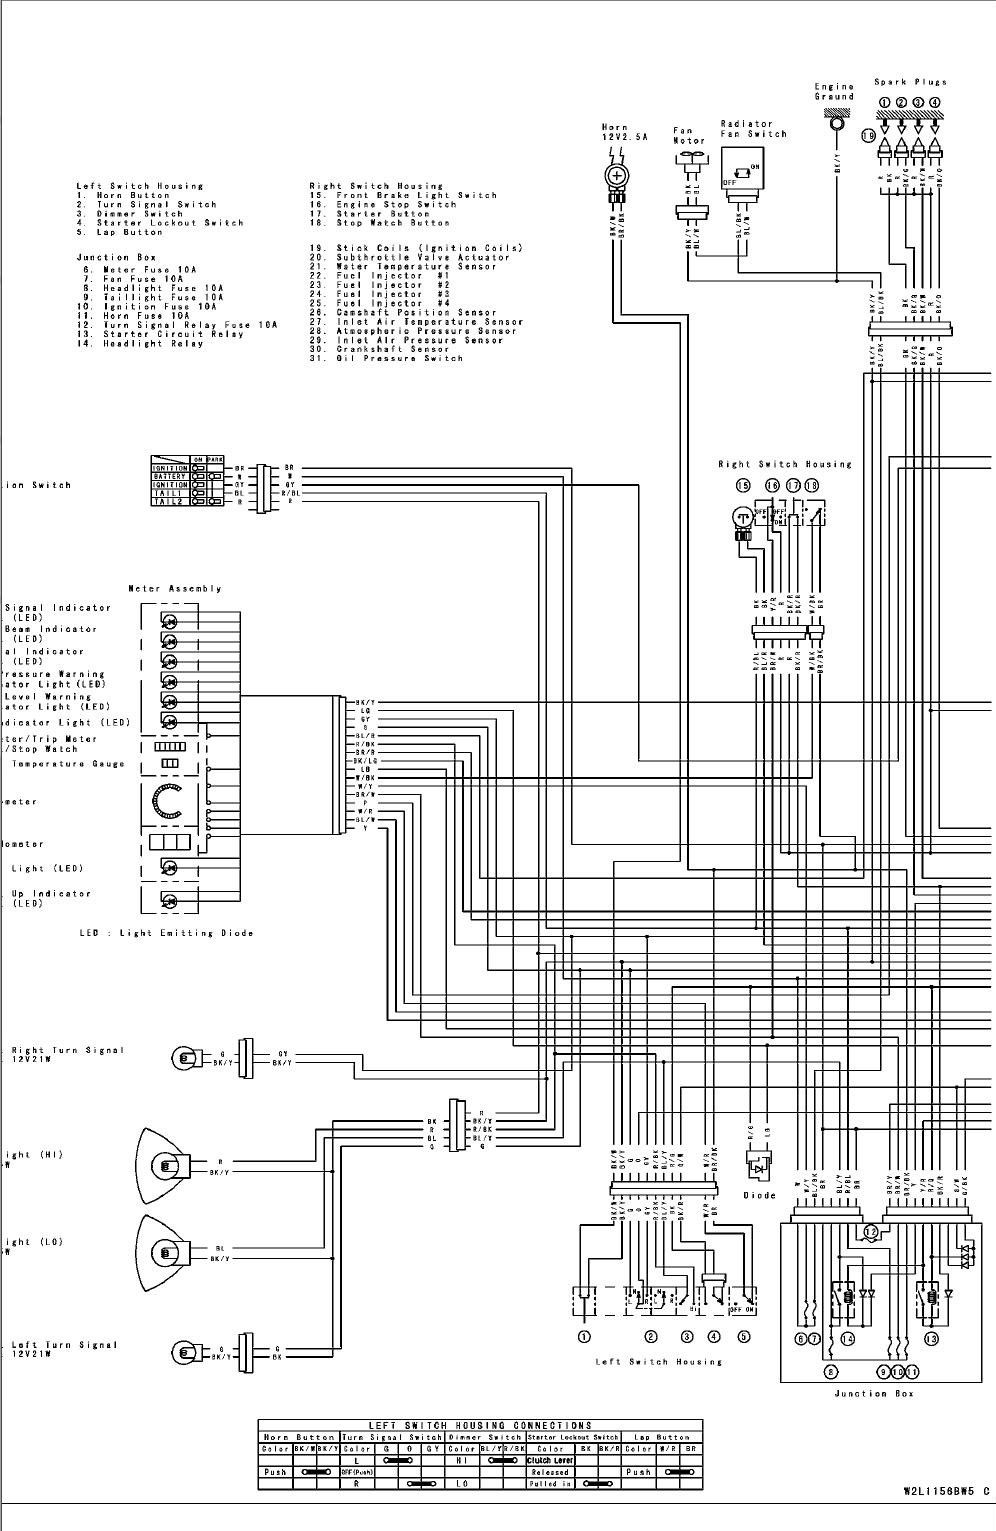 6CD15 1995 Zx 600 Fuse Box Diagram | Wiring LibraryWiring Library